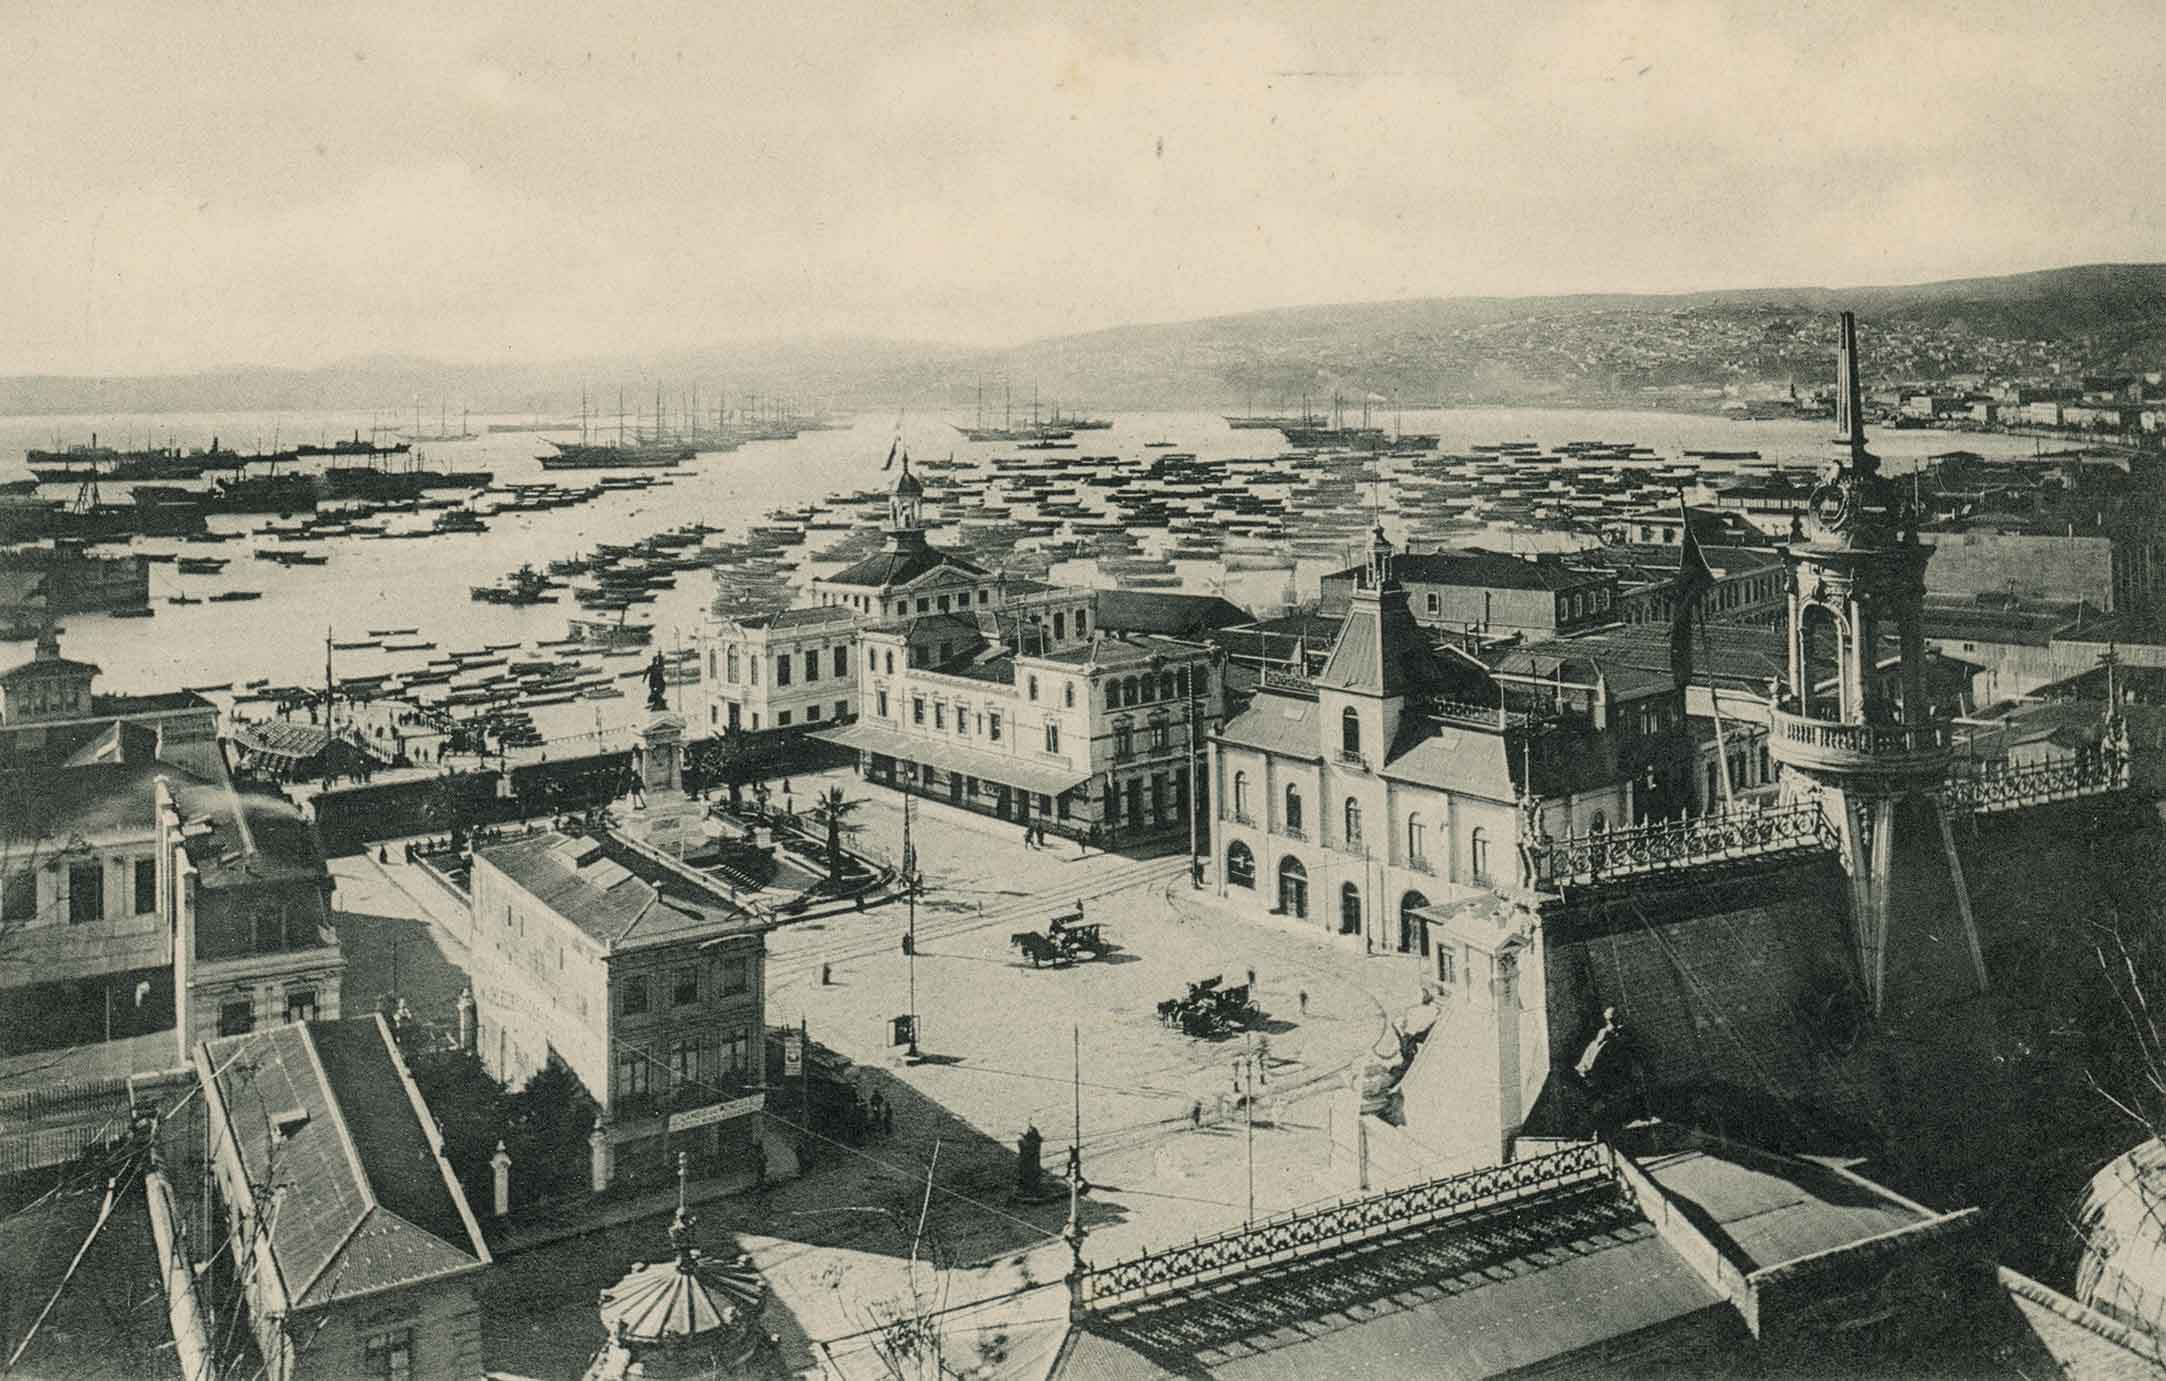 Enterreno - Fotos históricas de chile - fotos antiguas de Chile - Plaza Sotomayor de Valparaíso en 1913